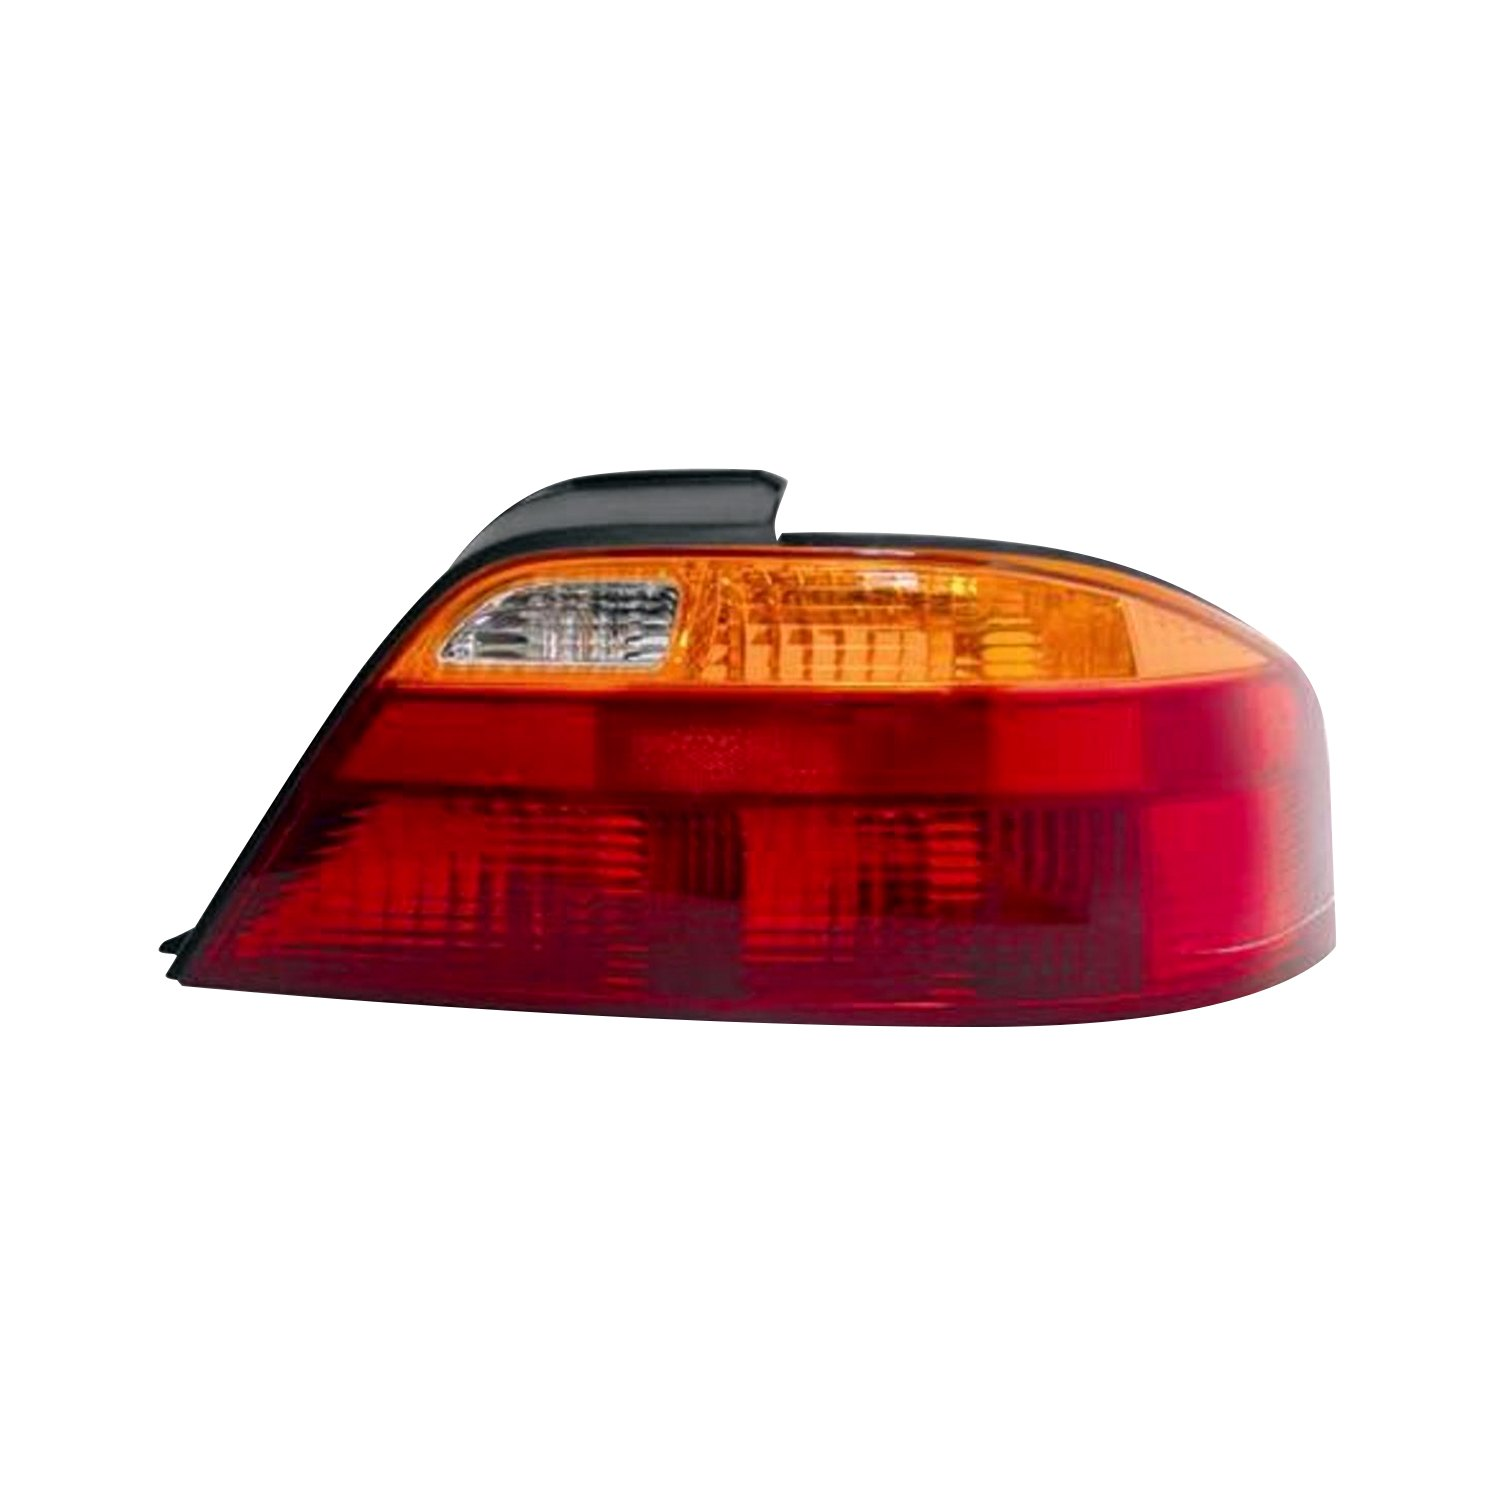 Acura TL 2001 Replacement Tail Light